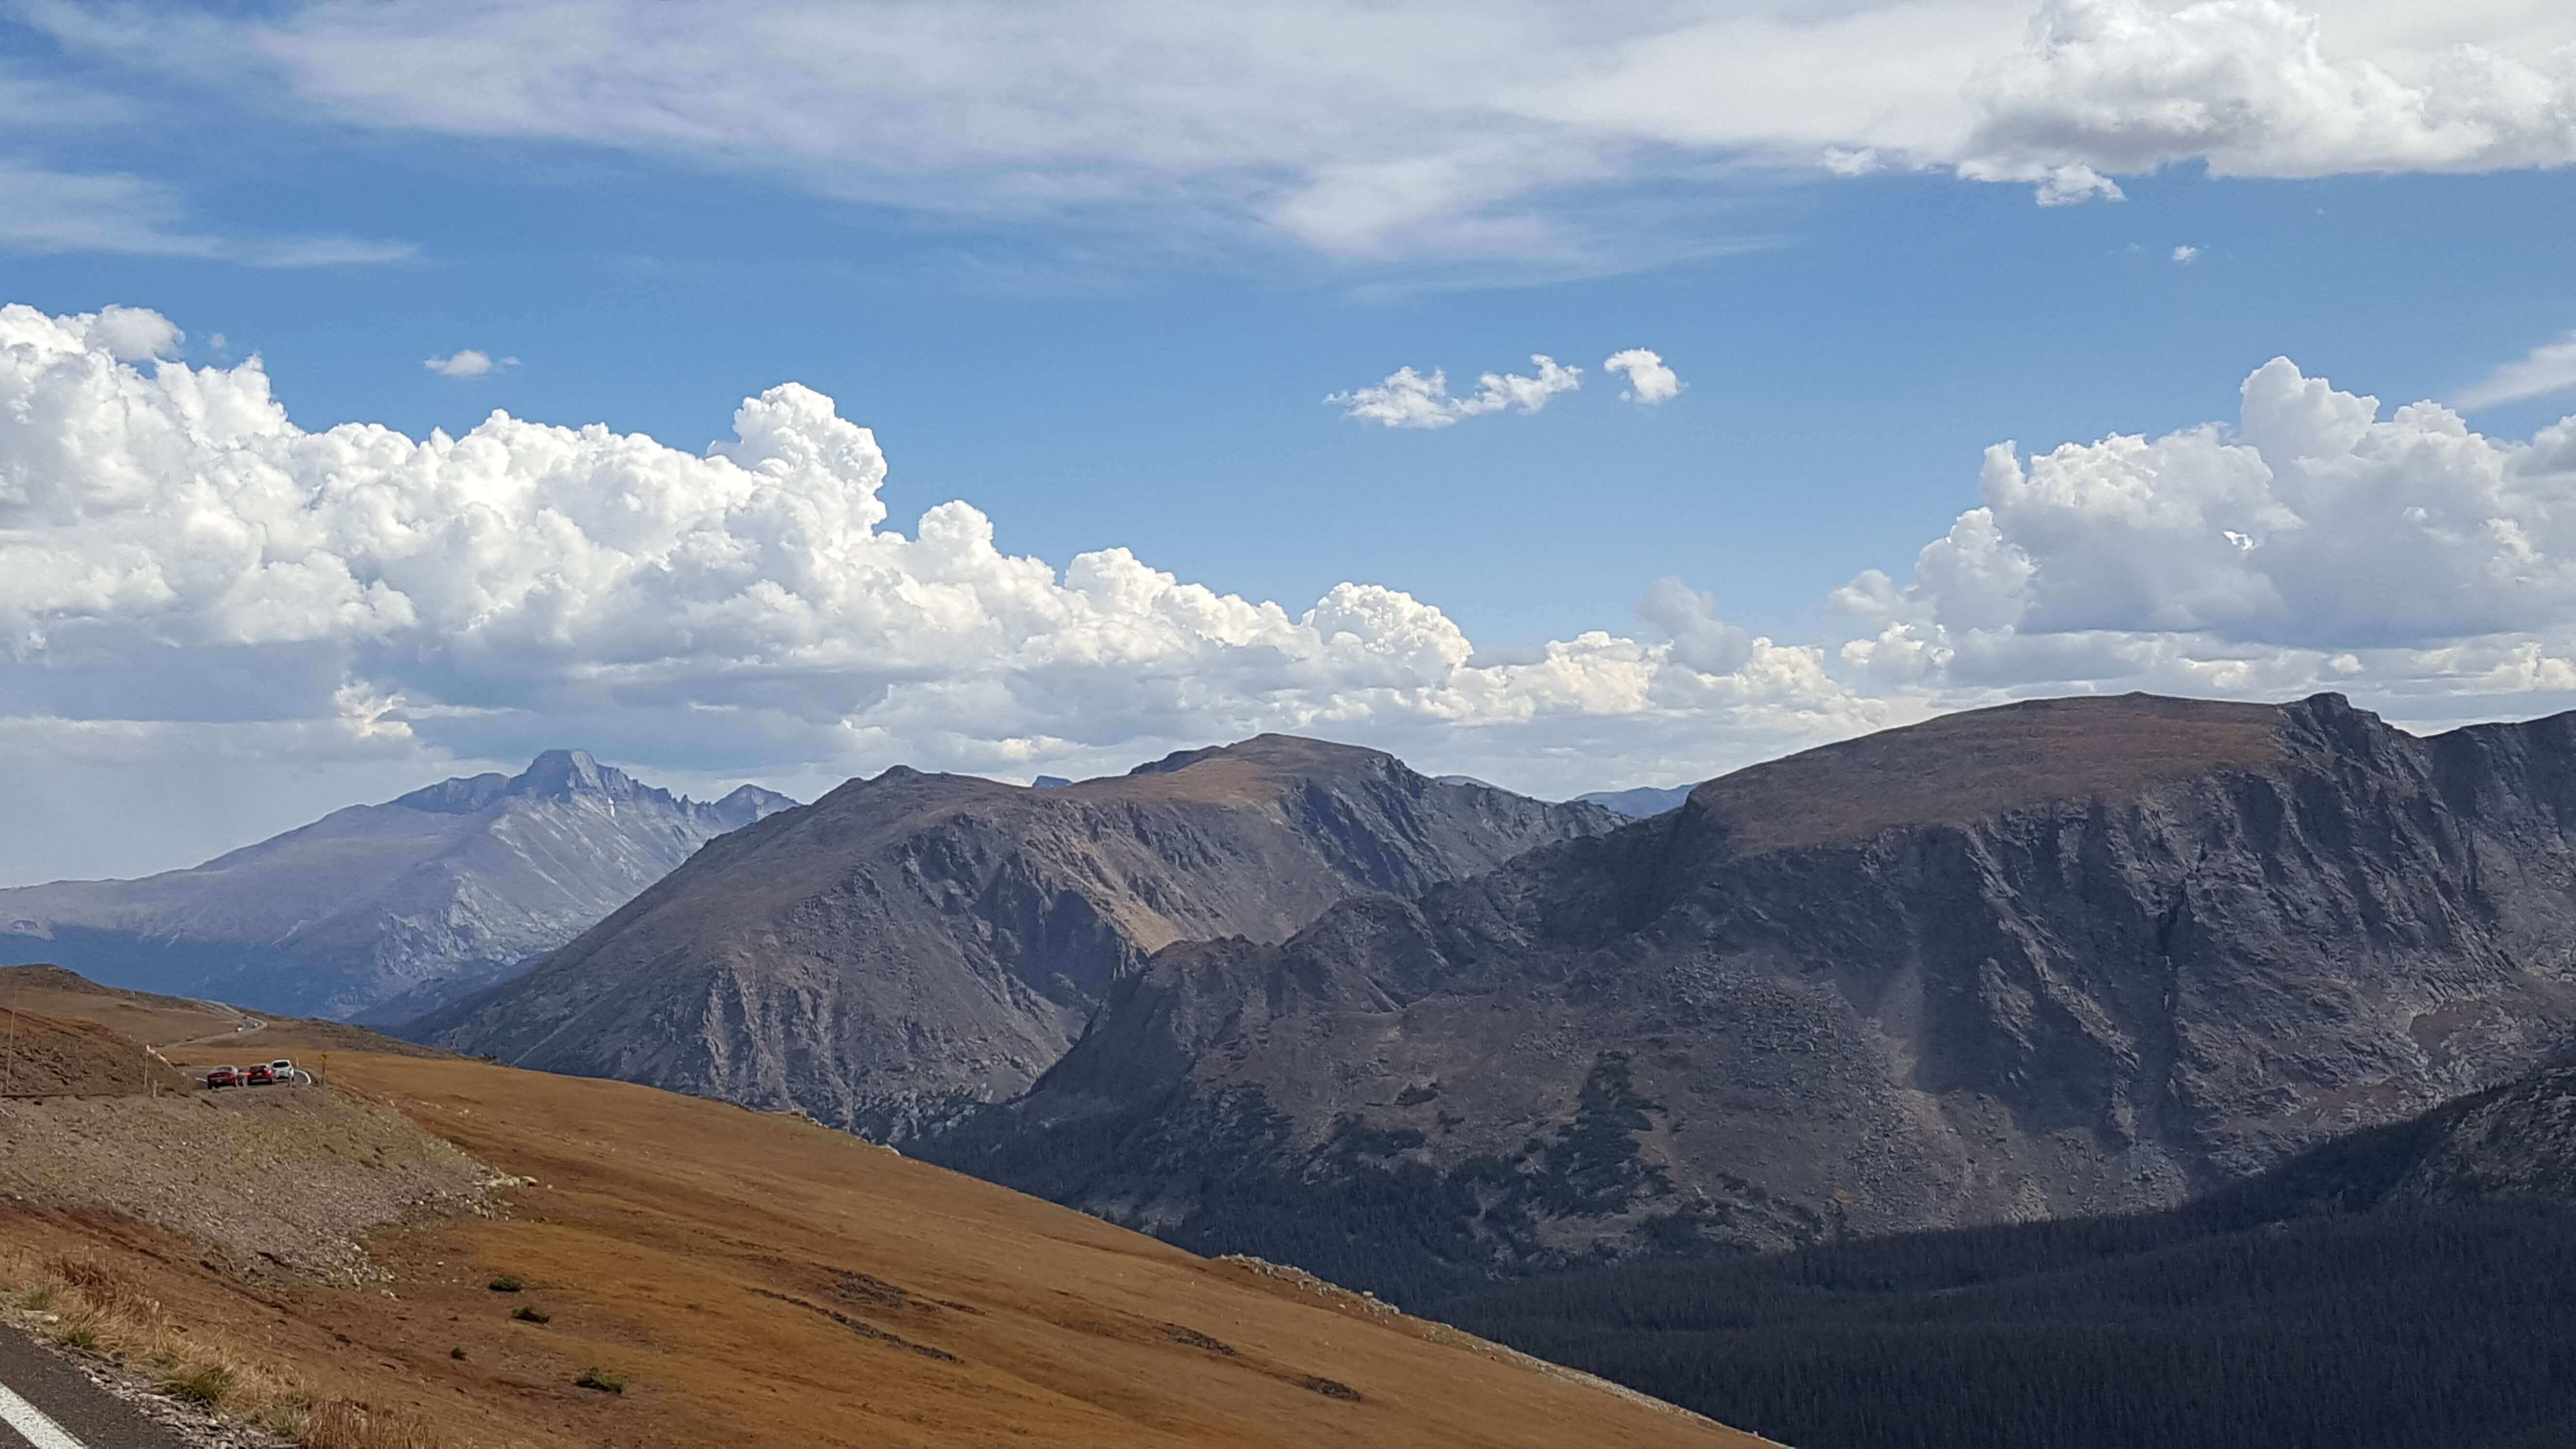 A clear view of Long's Peak from Trail Ridge Road